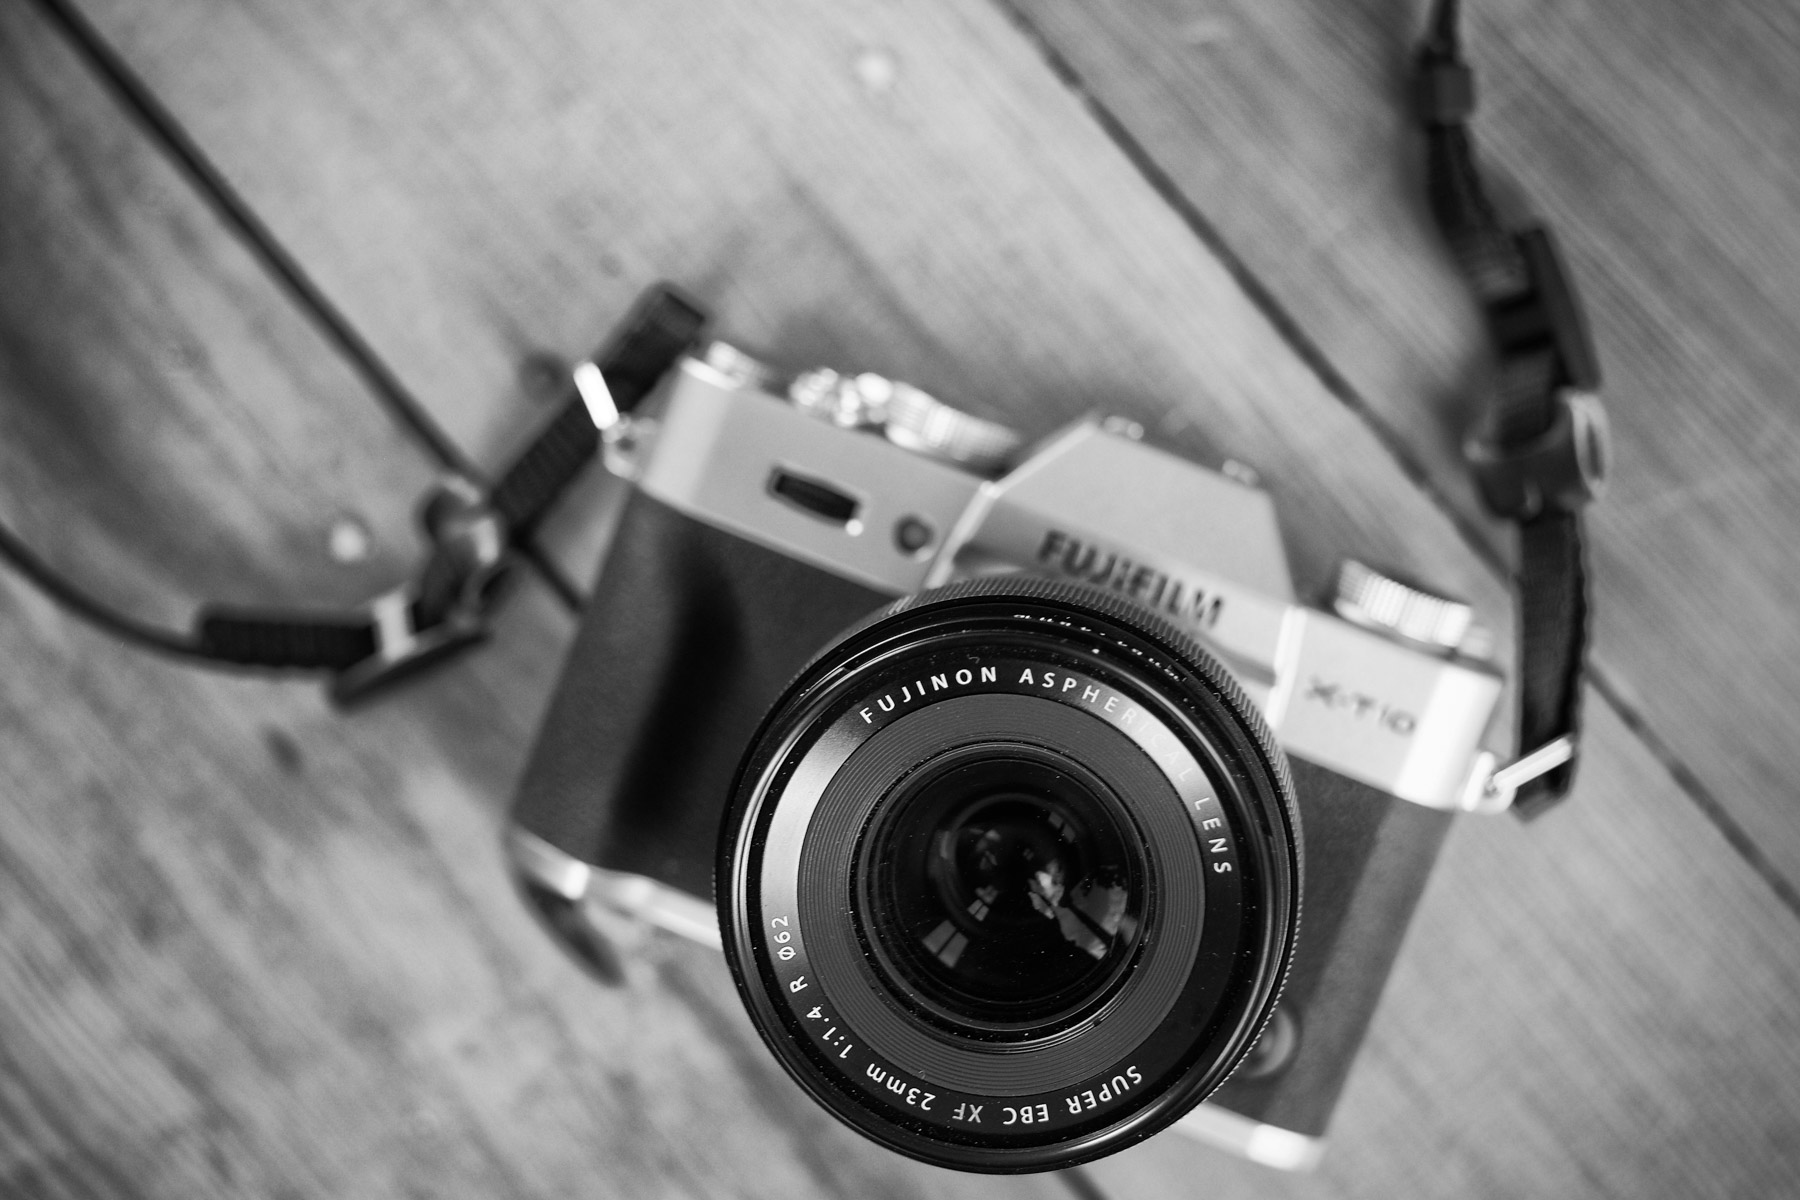 Fuji XT-10 with XF 23mm F/1.4 lens